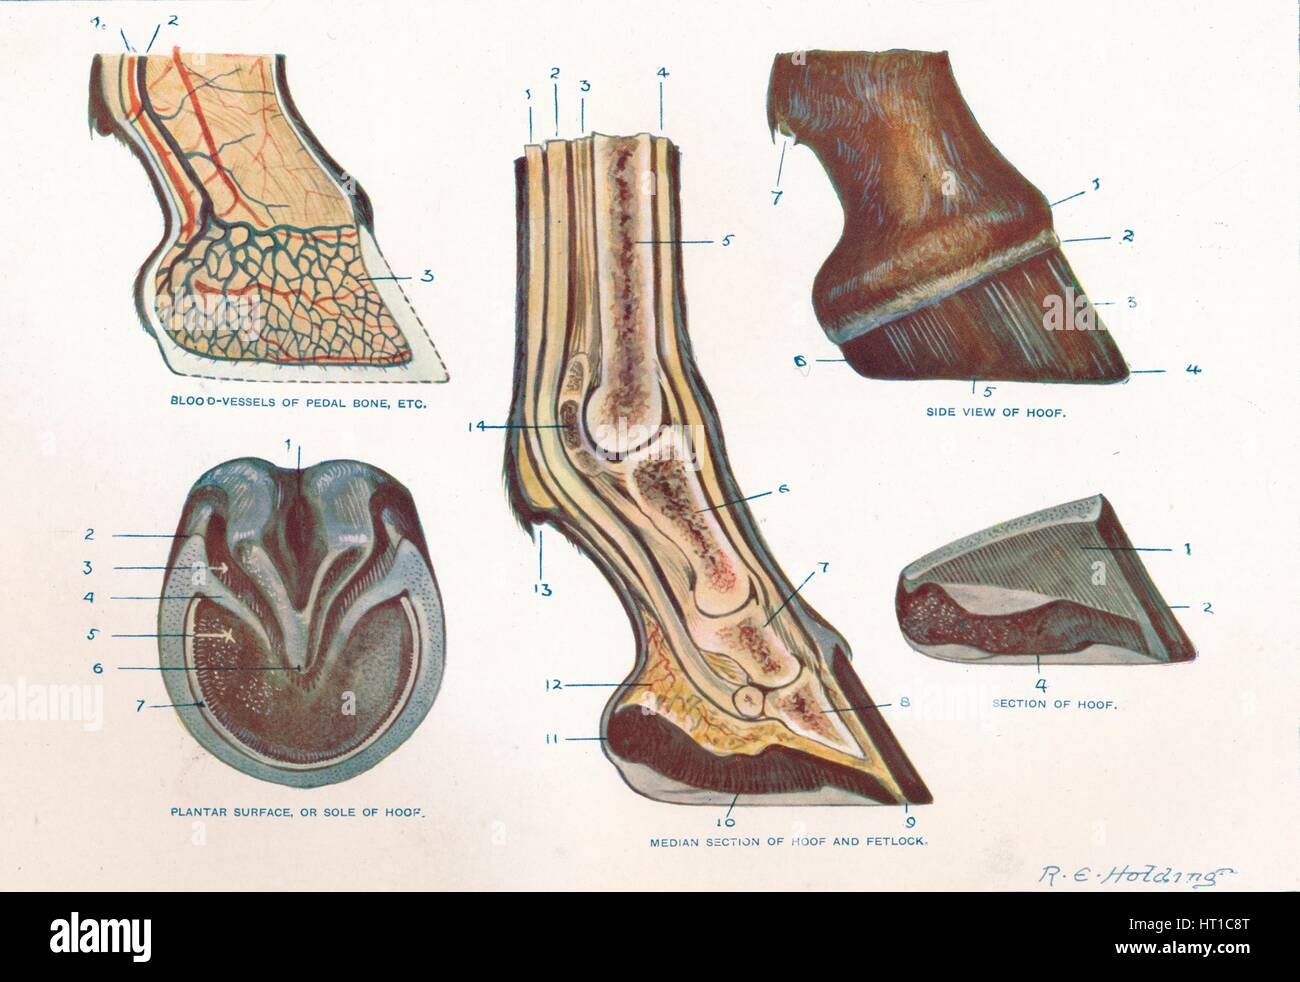 hight resolution of structure of the foot of a horse c1907 c1910 artist re